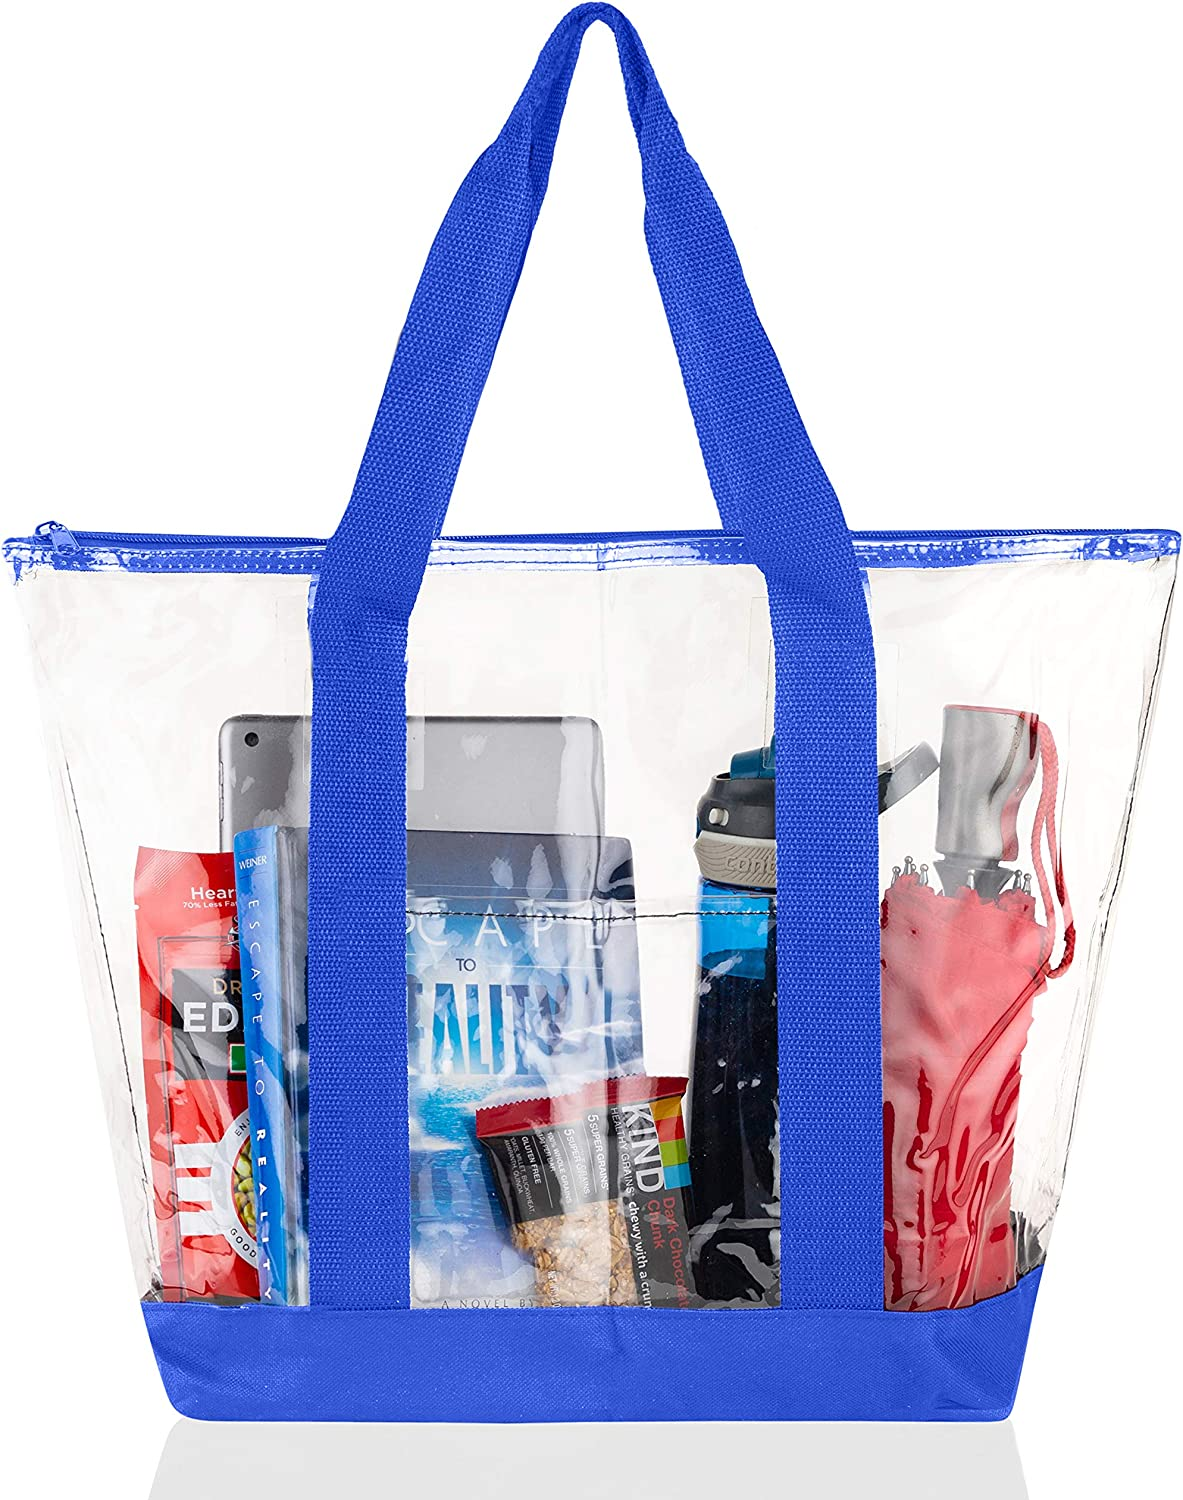 Bags for Less Large Clear Vinyl Tote Bags Shoulder Handbag (Royal Blue)